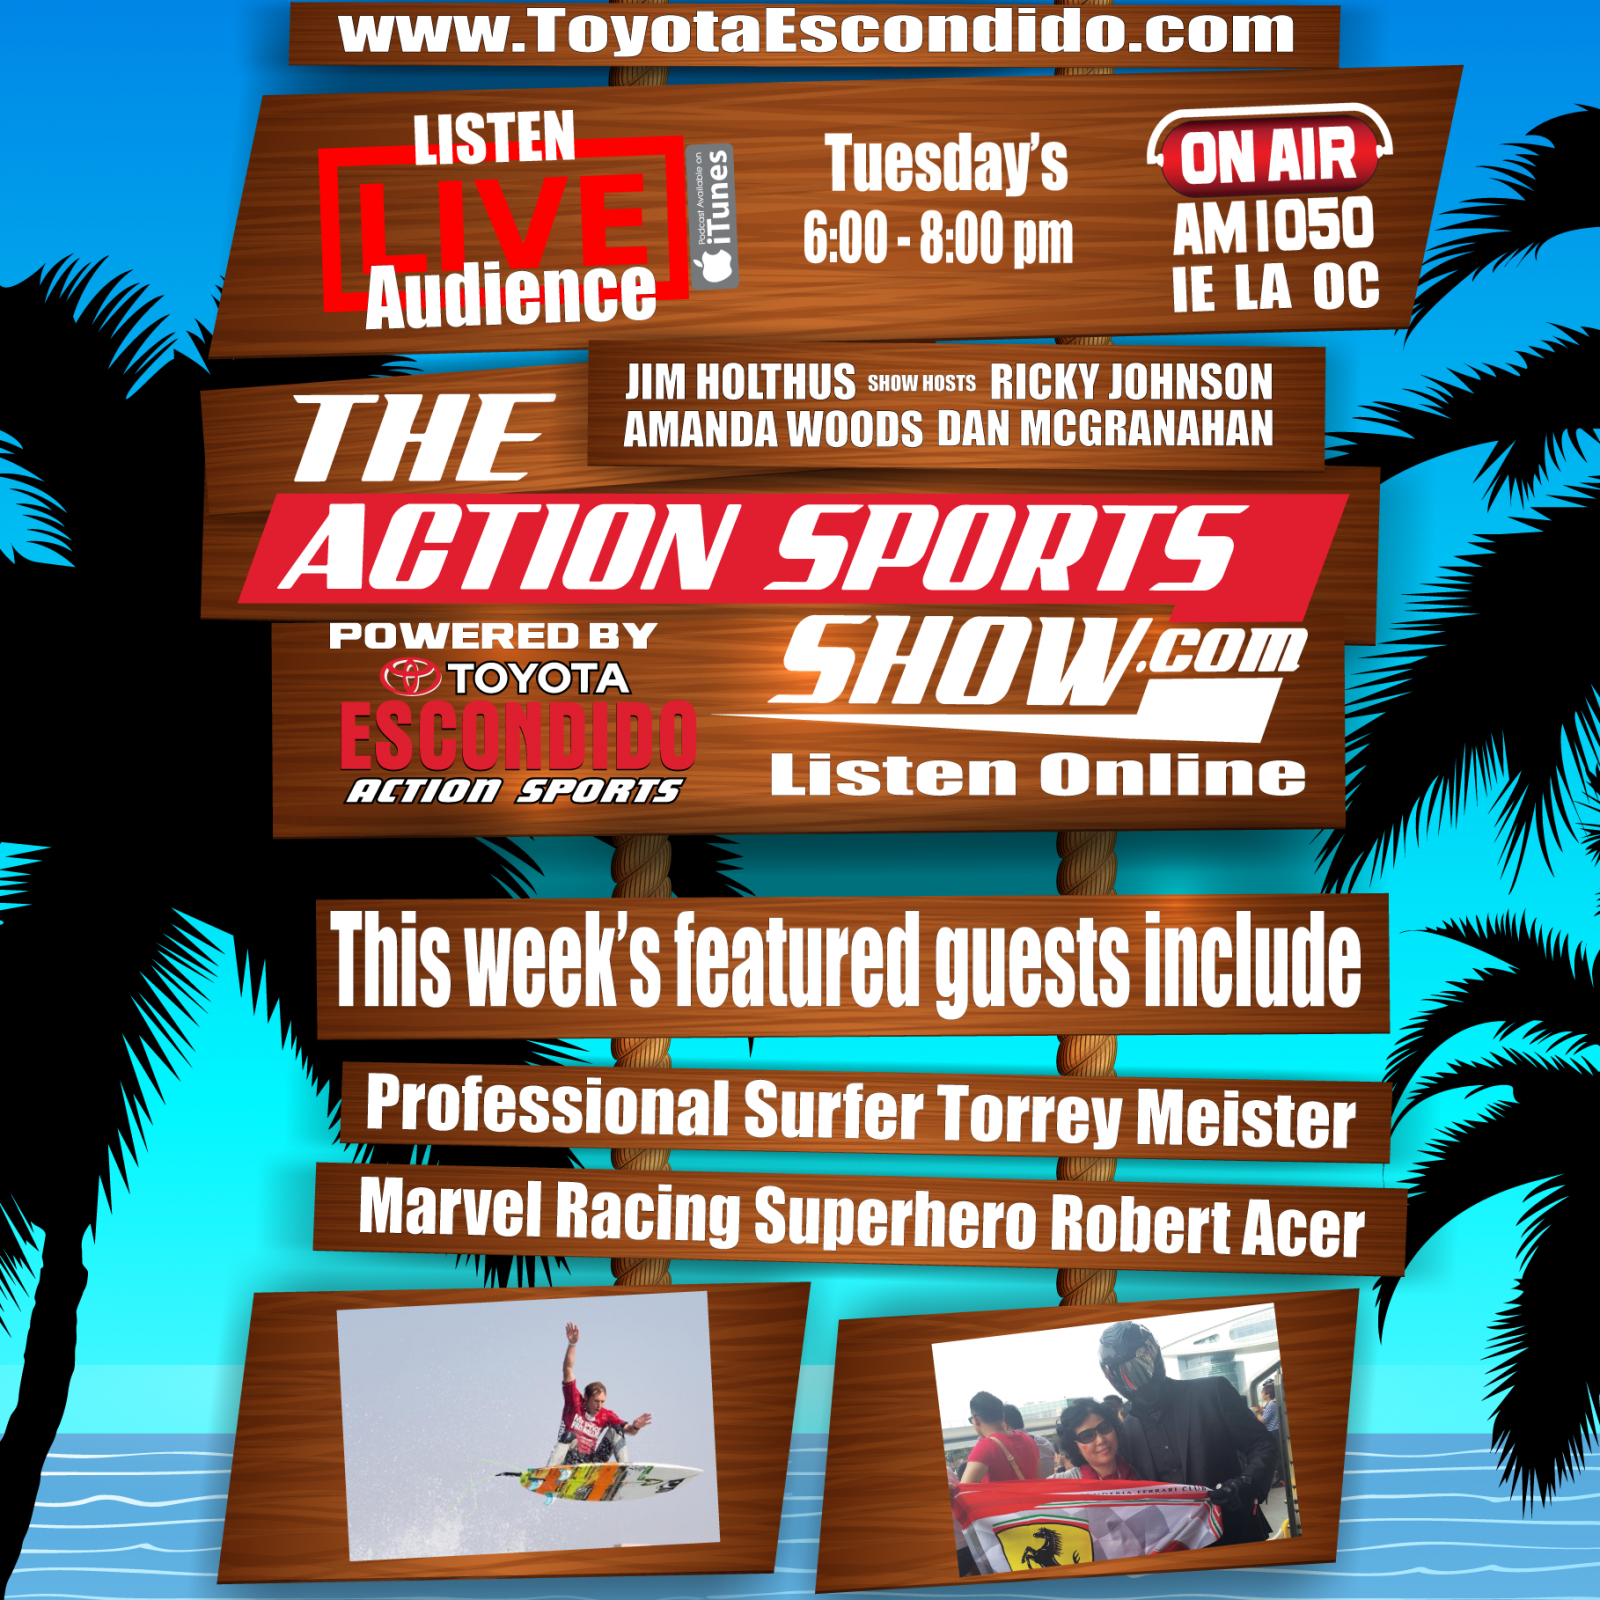 Action Sports Show 7-14-15 Blue.png